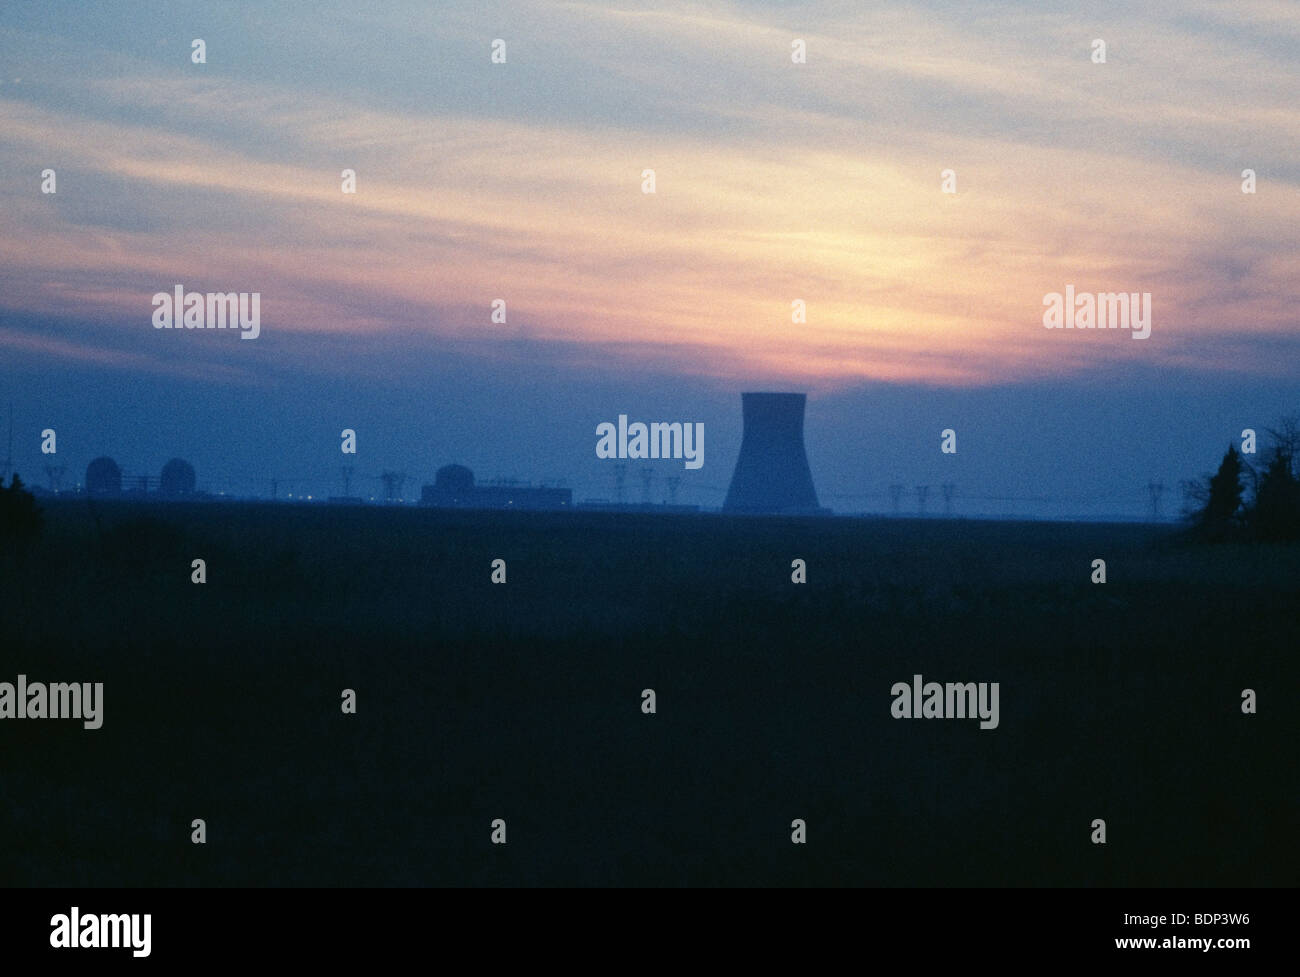 Nuclear cooling tower outside of Philadelphia, PA in sunset. Transmission wired in foreground - Stock Image